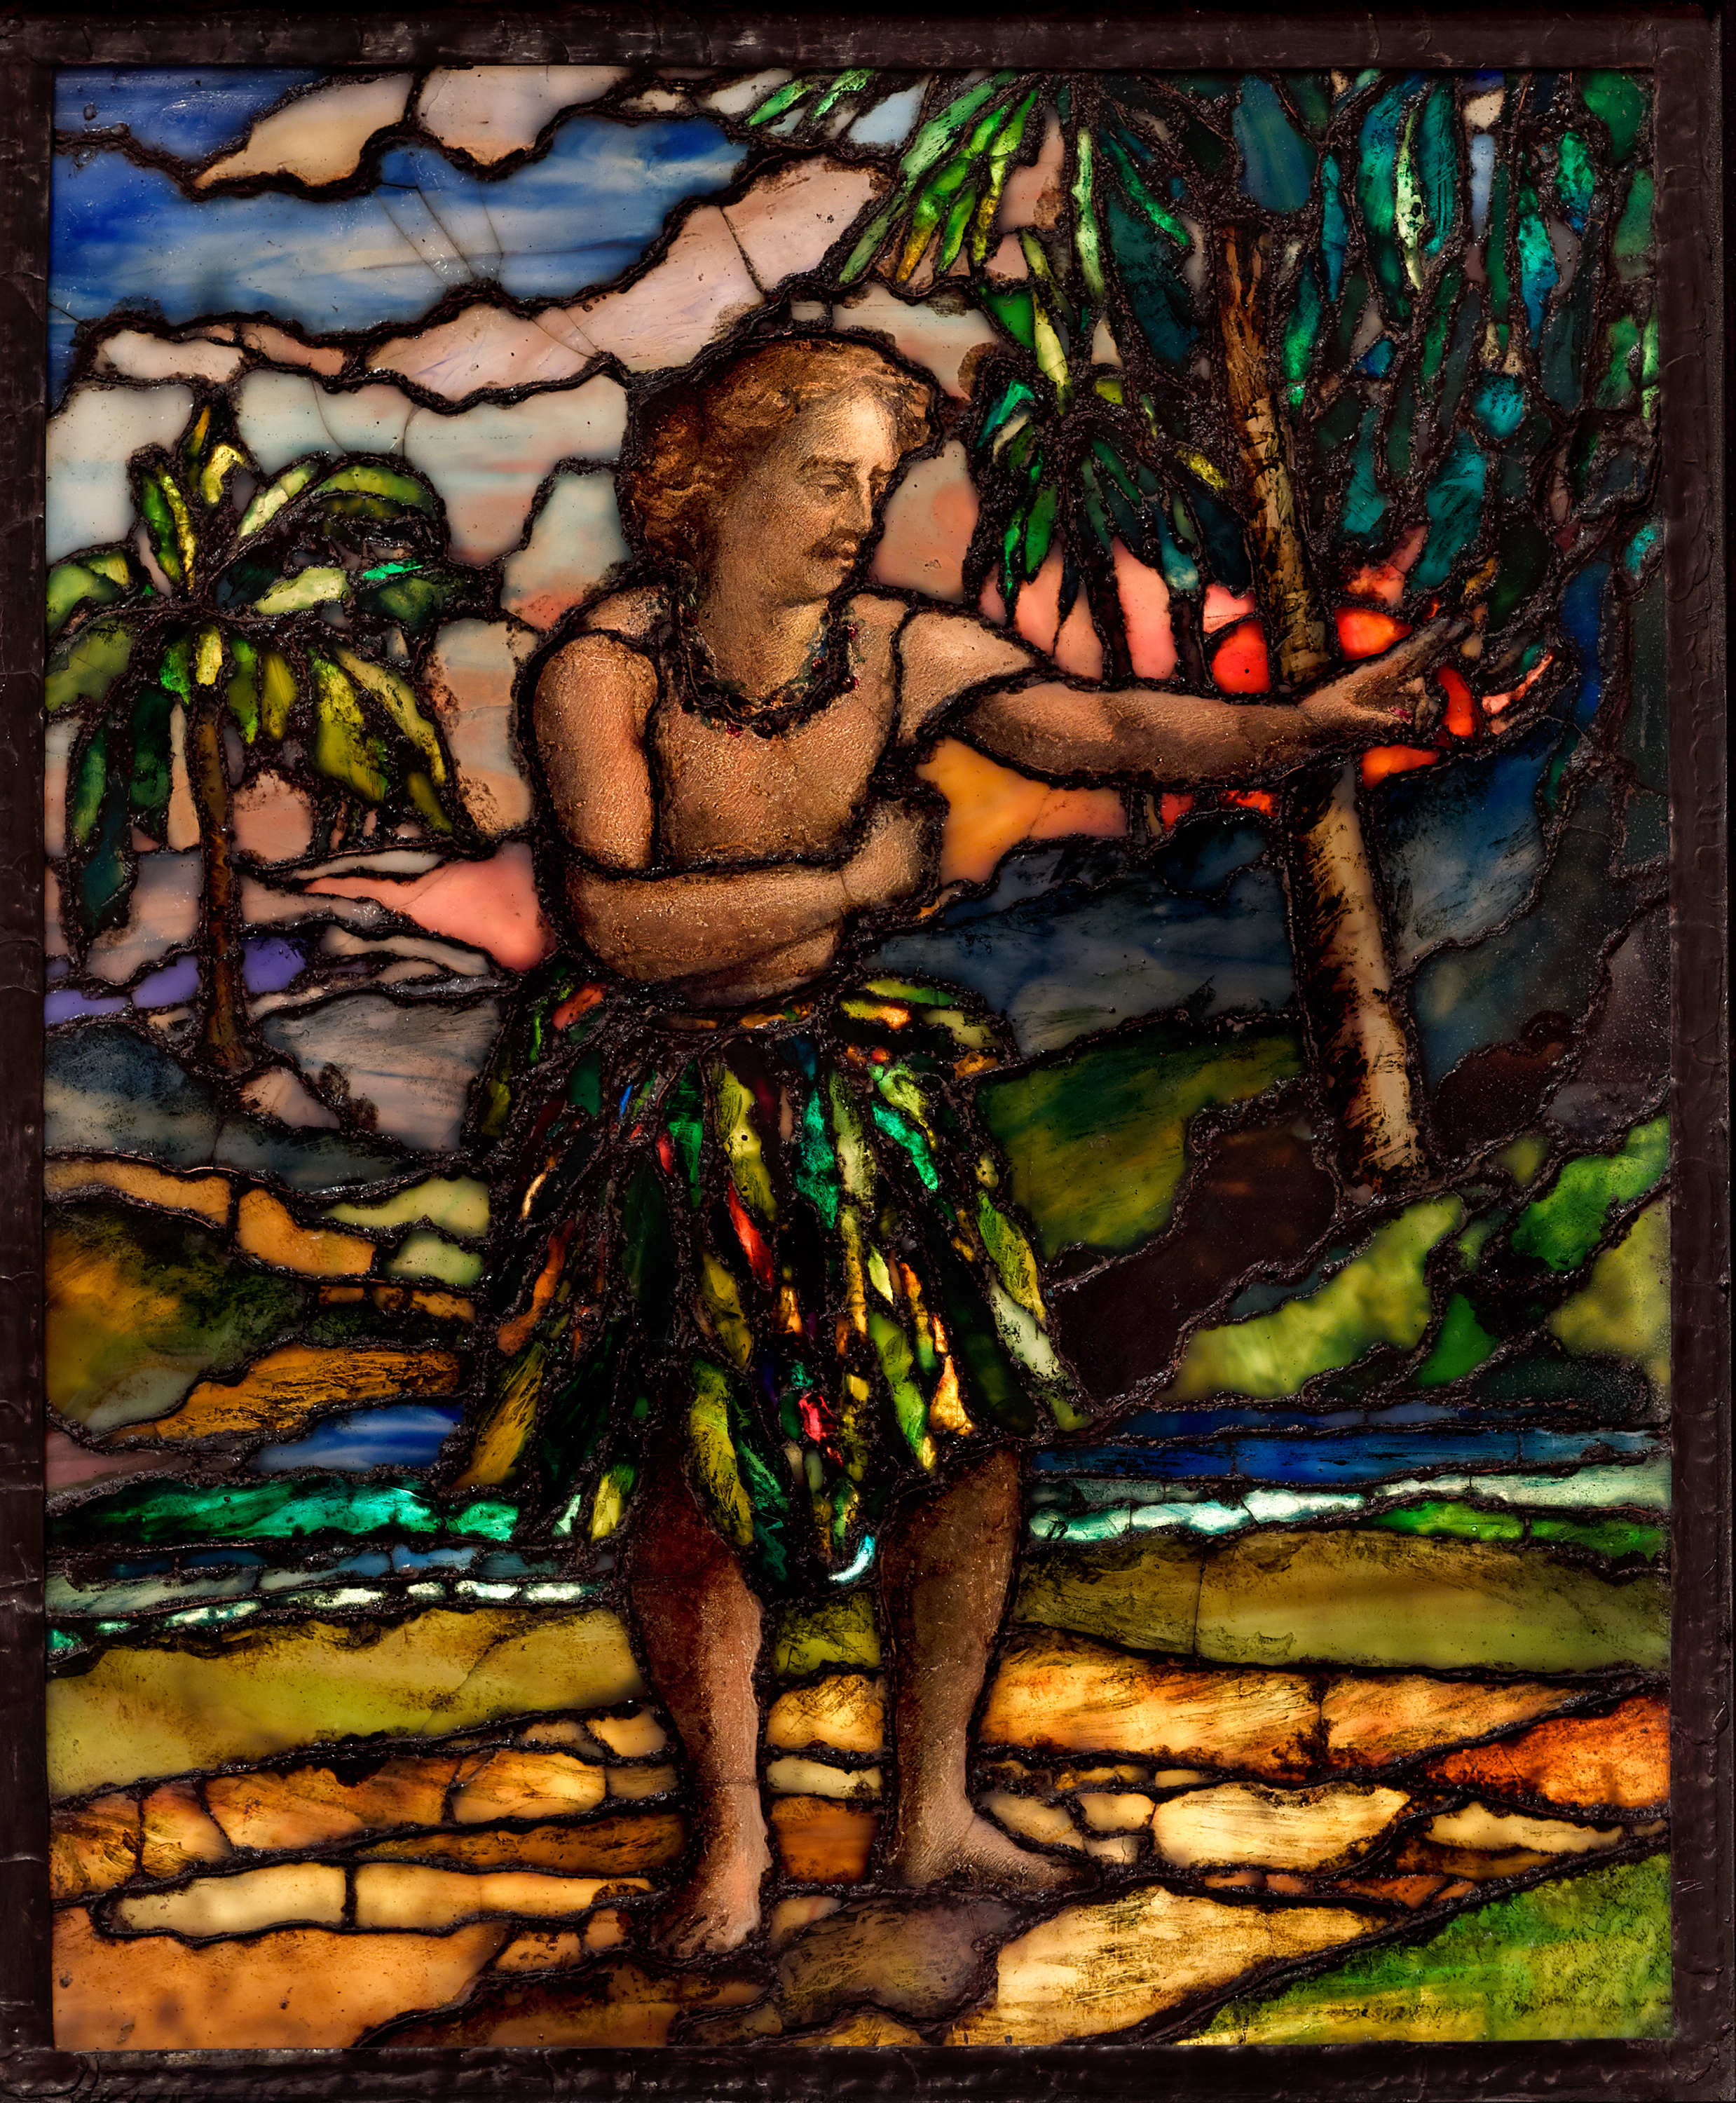 John La Farge, American, 1835–1910: Samoan Taupo Dancing the Siva, 1909.  Cloisonné stained glass. Gift of Oliver LaFarge Hamill (2017-233).